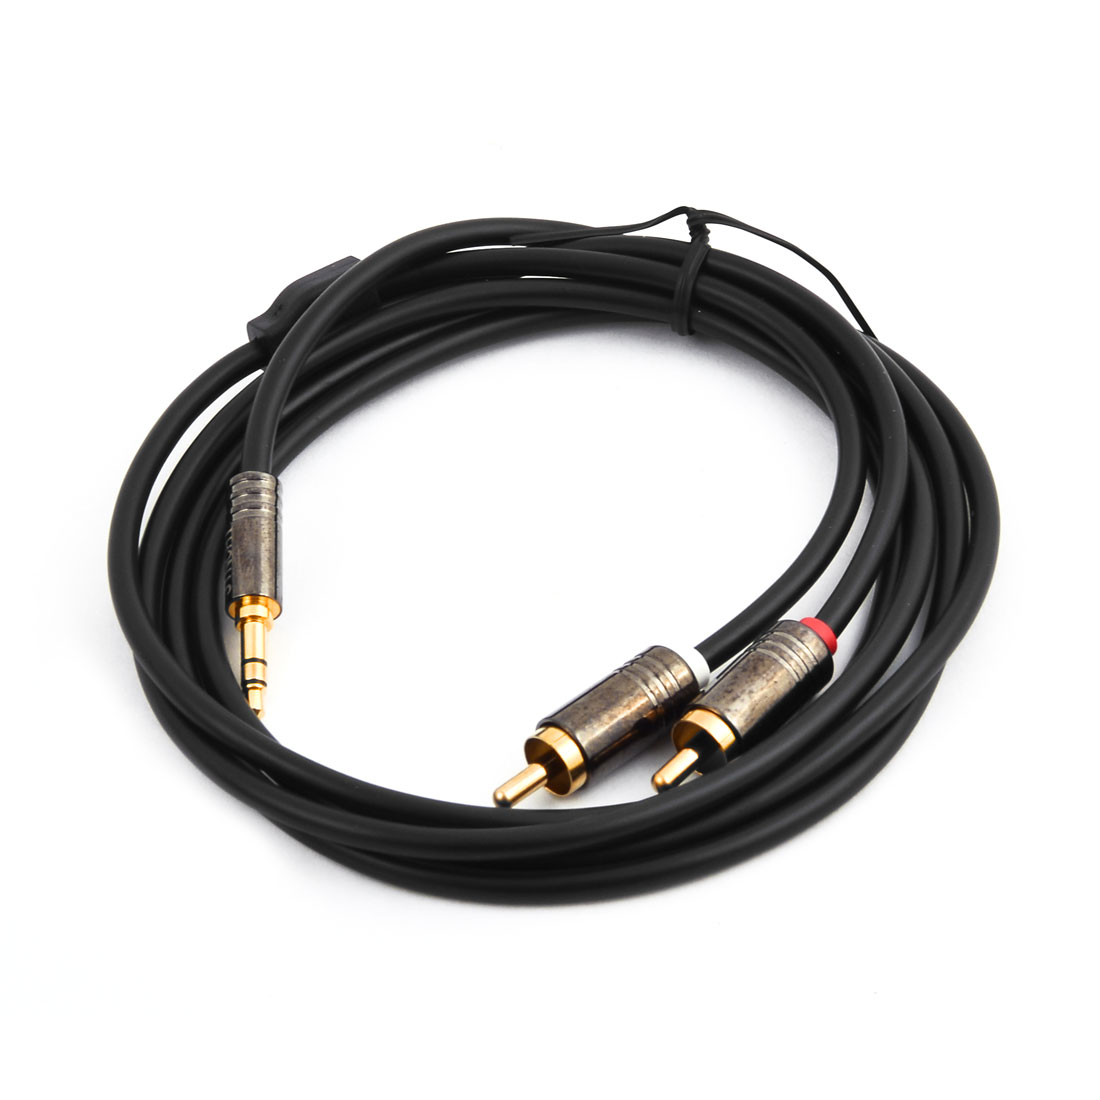 3.5mm Male to 2 RCA Male Adapter Audio Stereo Cable 4.9Ft Long for Laptop